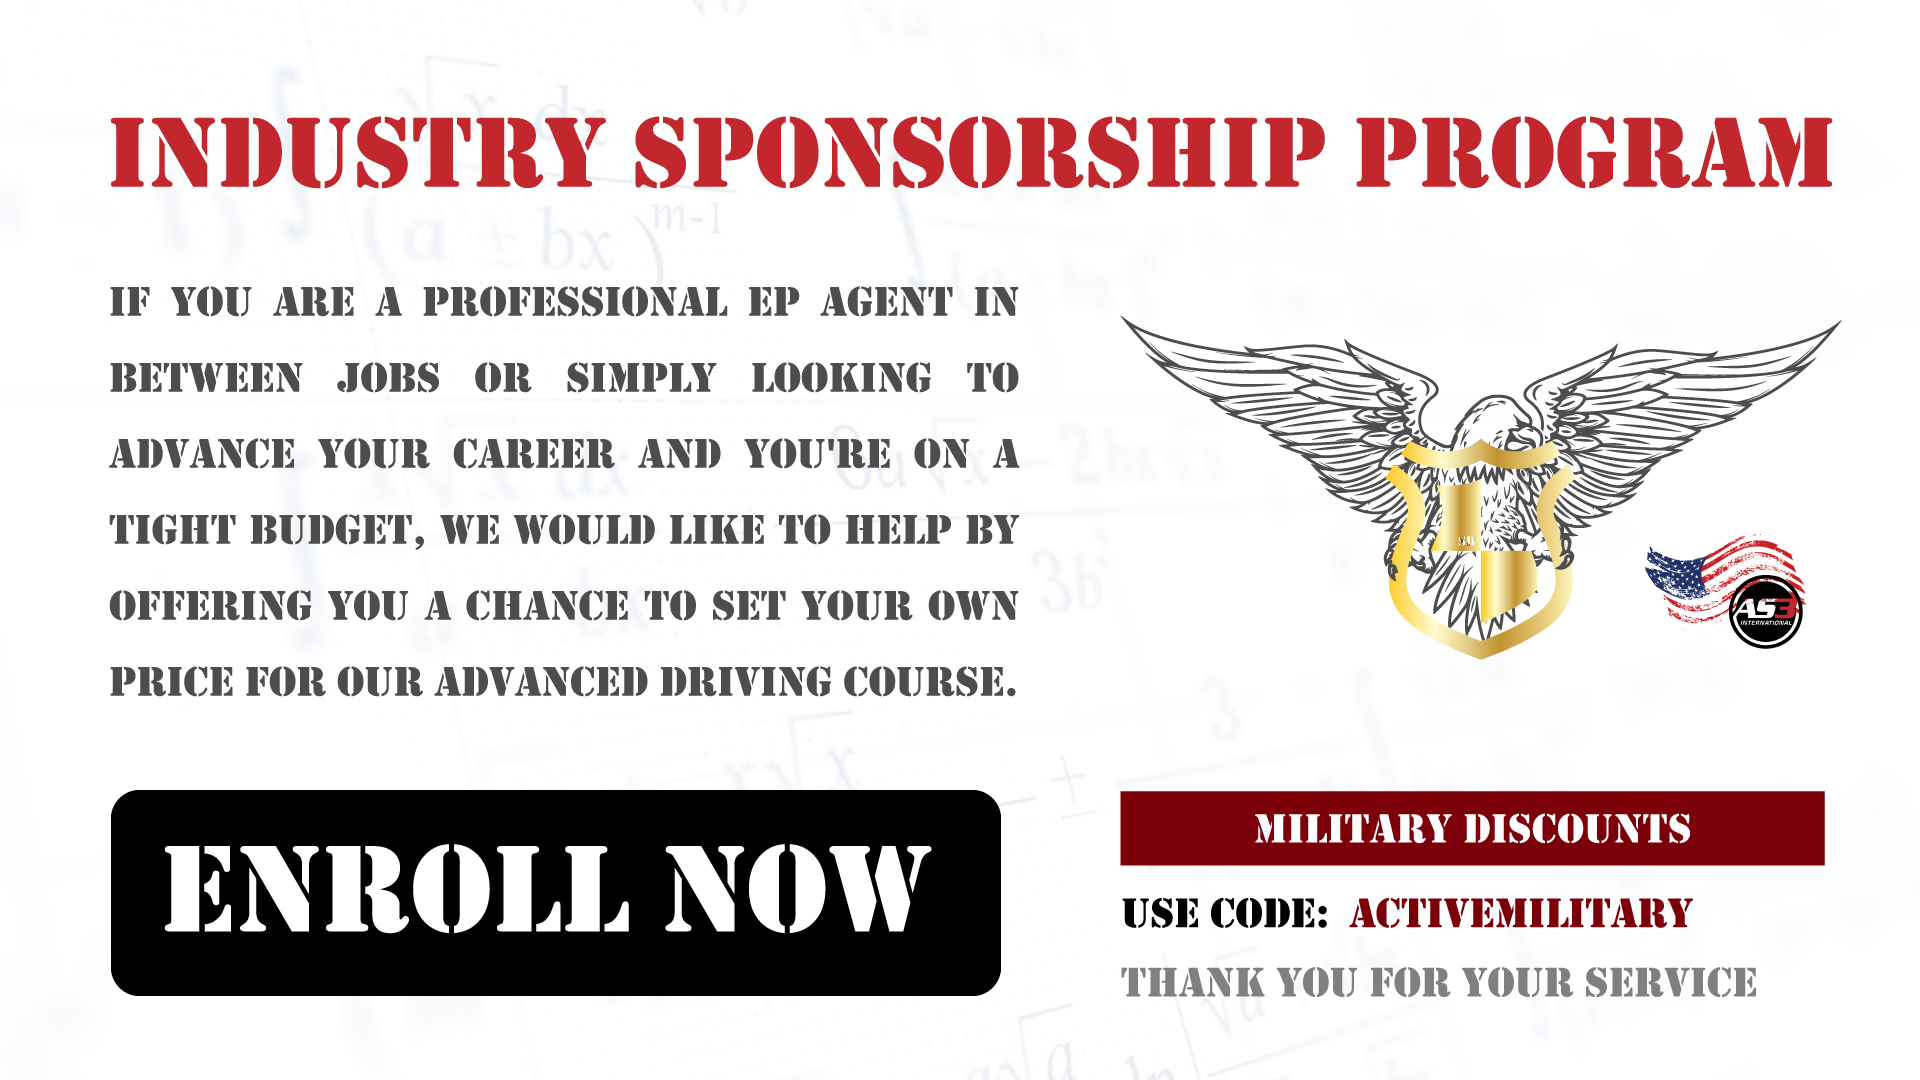 Industry Sponsorship Program - we want to show our s